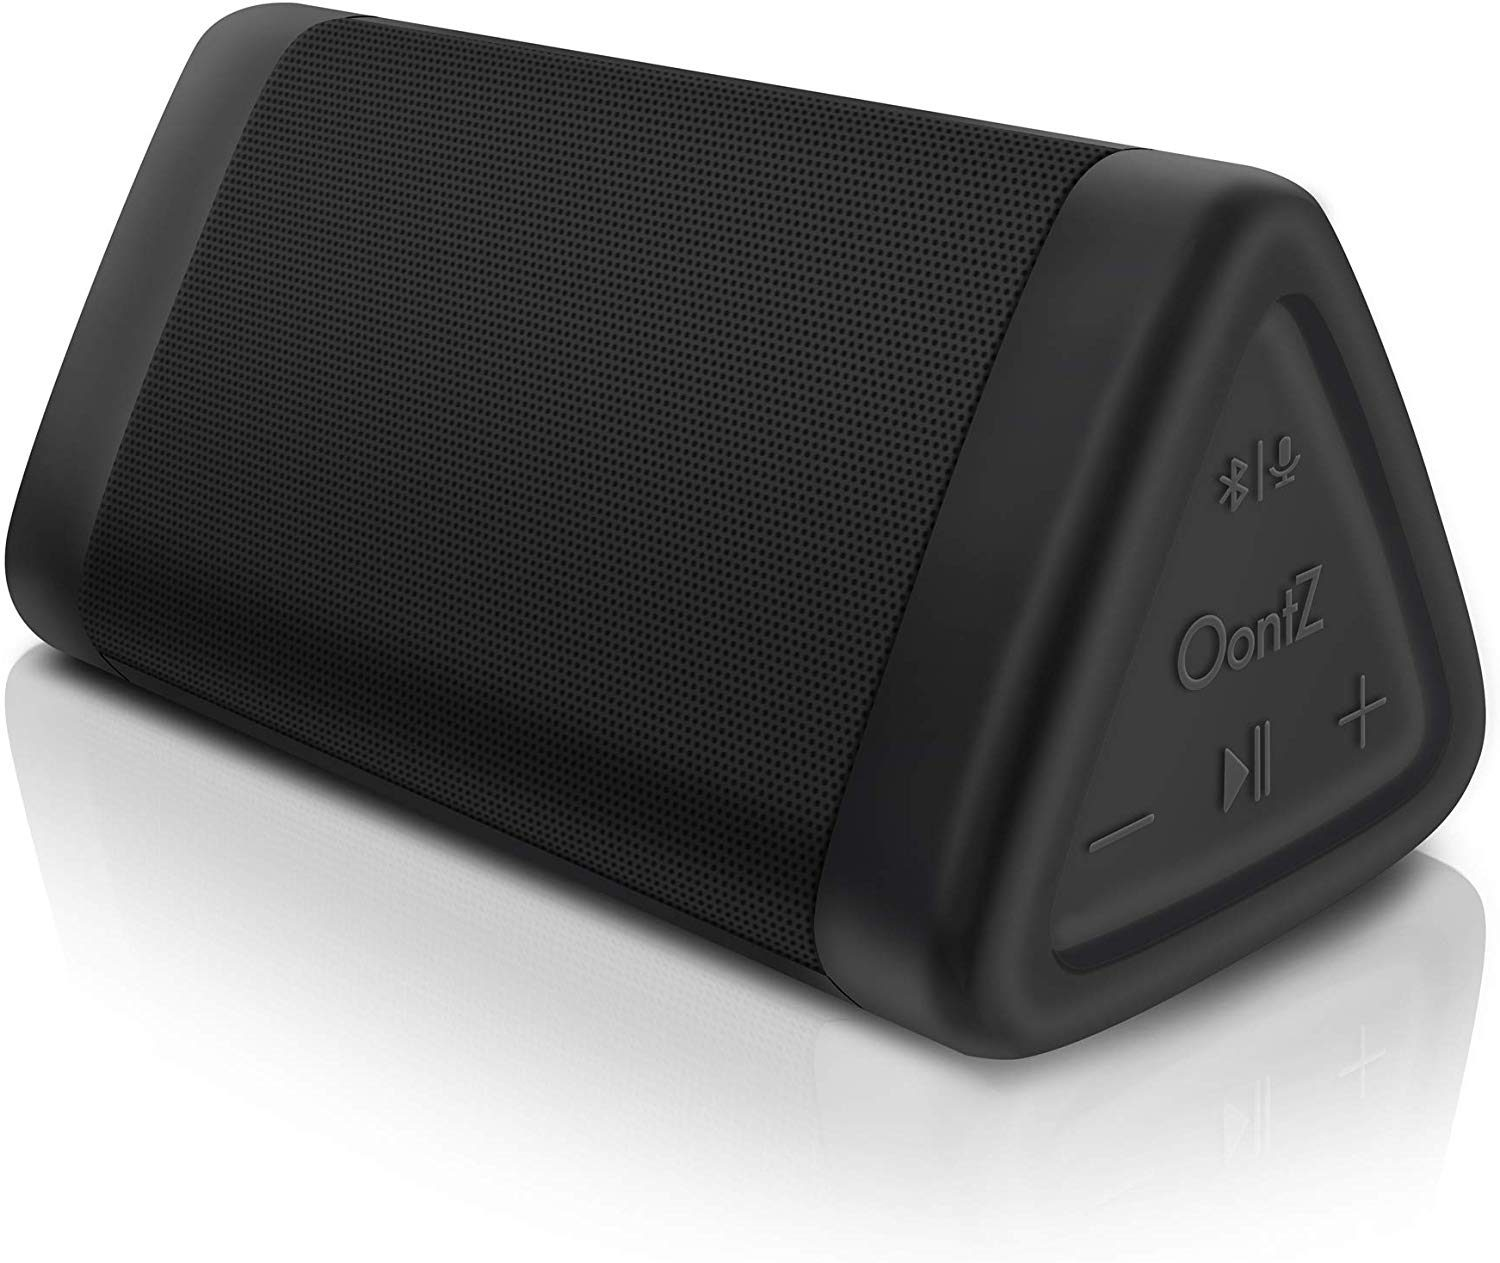 Best Portable Bluetooth Speakers In 2019 – Buying Guide and